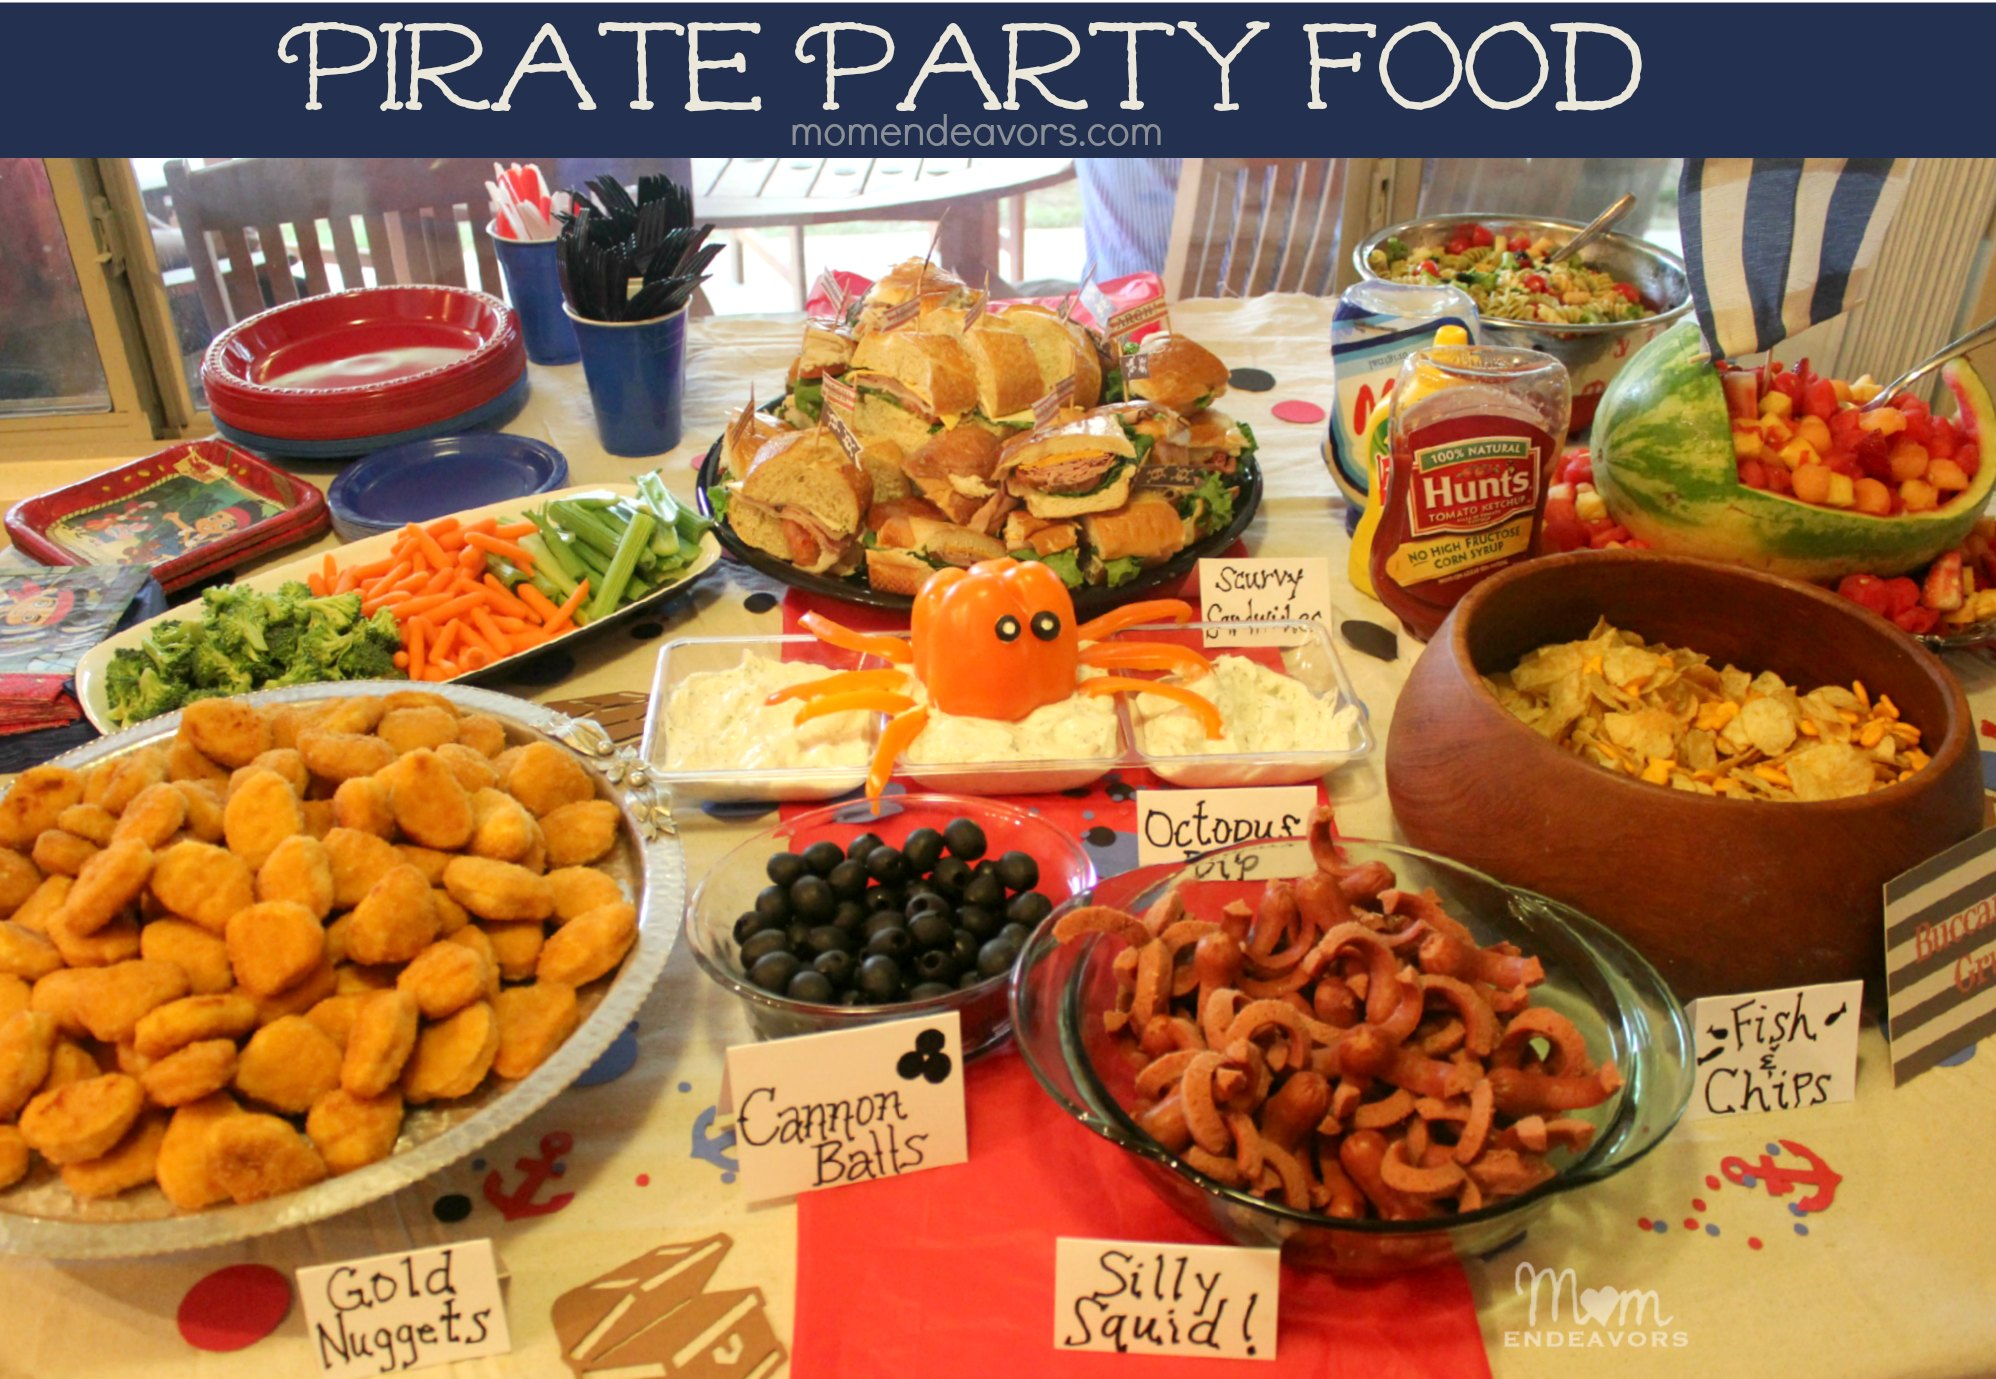 jake and the never land pirates birthday party food. Black Bedroom Furniture Sets. Home Design Ideas